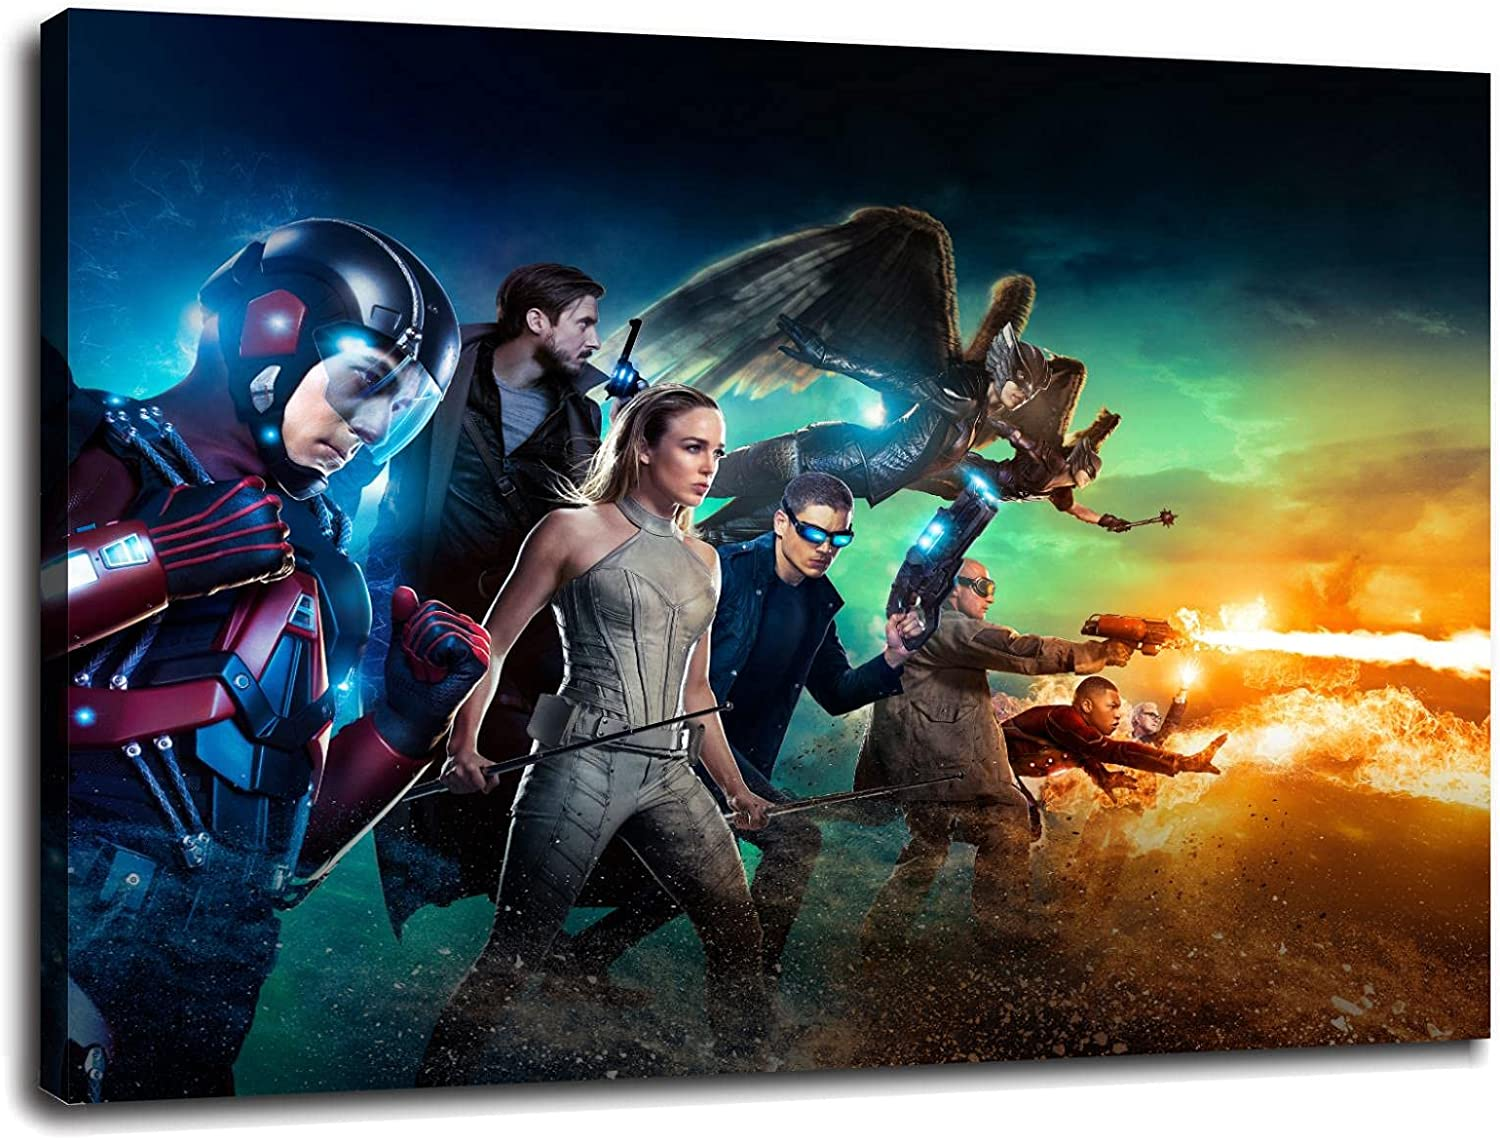 TV Show D Legends Of Tomorrow Pos 人気商品 Silk Inch Canvas Prints 70%OFFアウトレット Poster